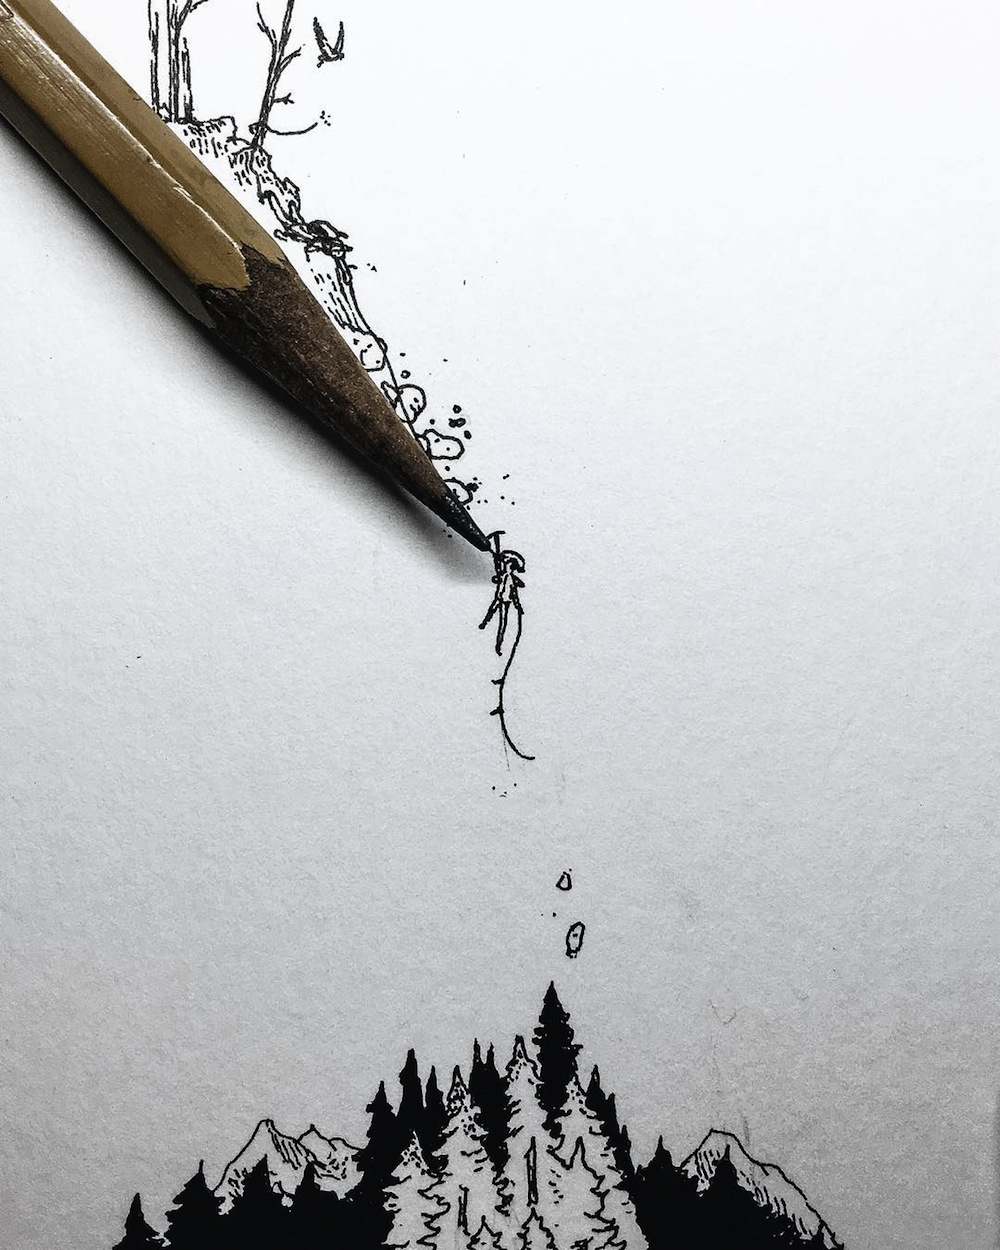 insanely teeny tiny ink drawings smaller than the tip of a pencil